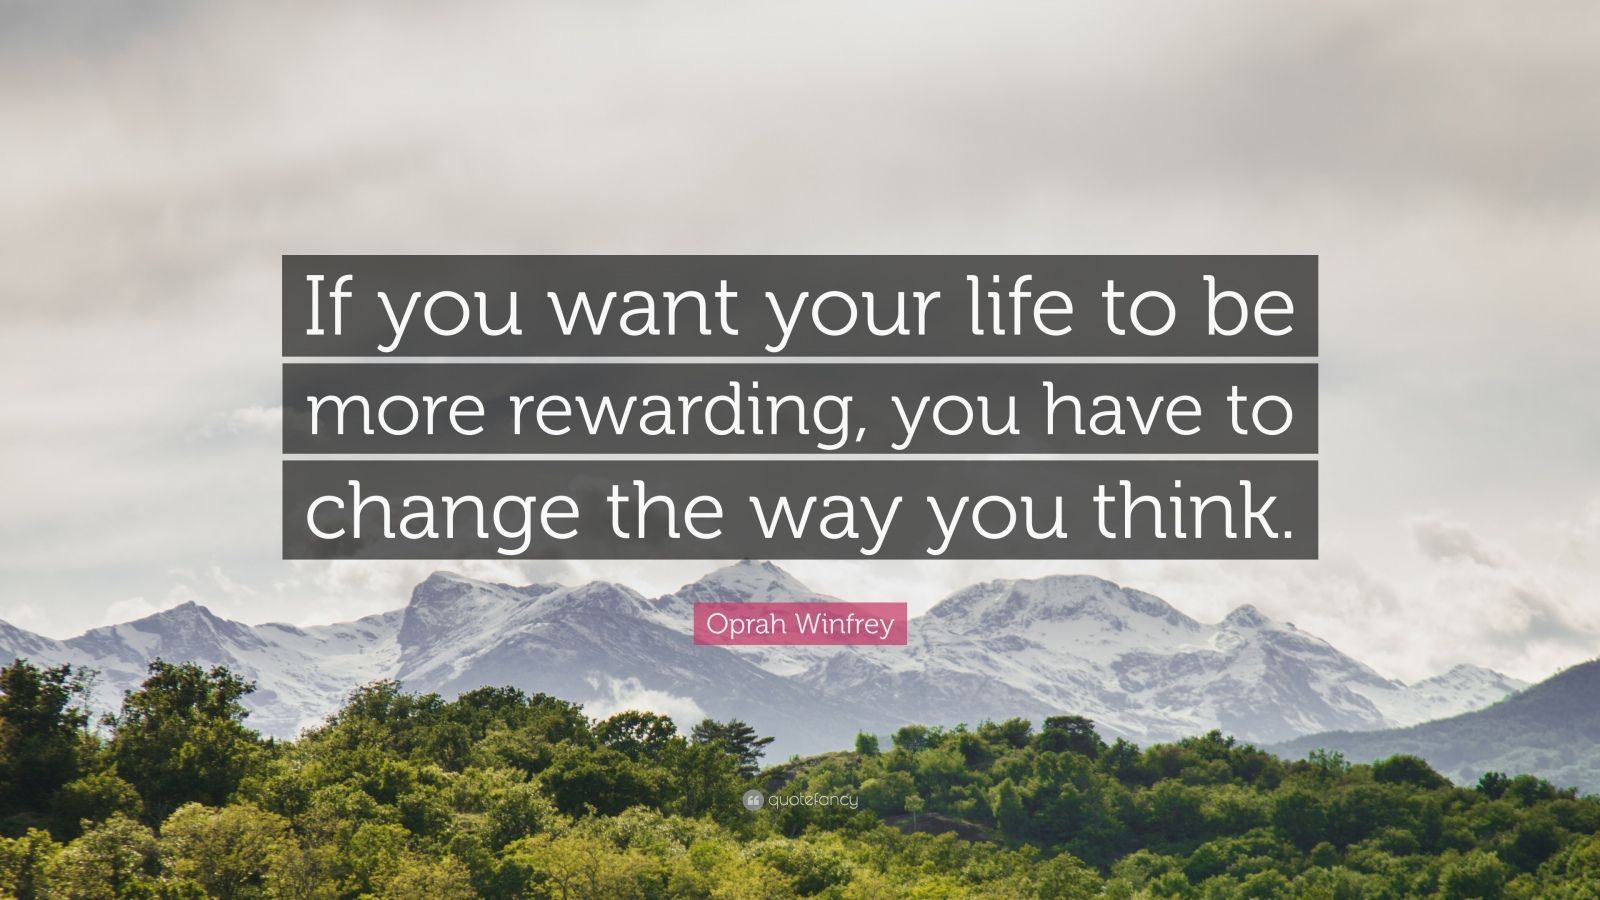 """Oprah Winfrey Quote: """"If you want your life to be more rewarding, you have to change the way you think."""""""